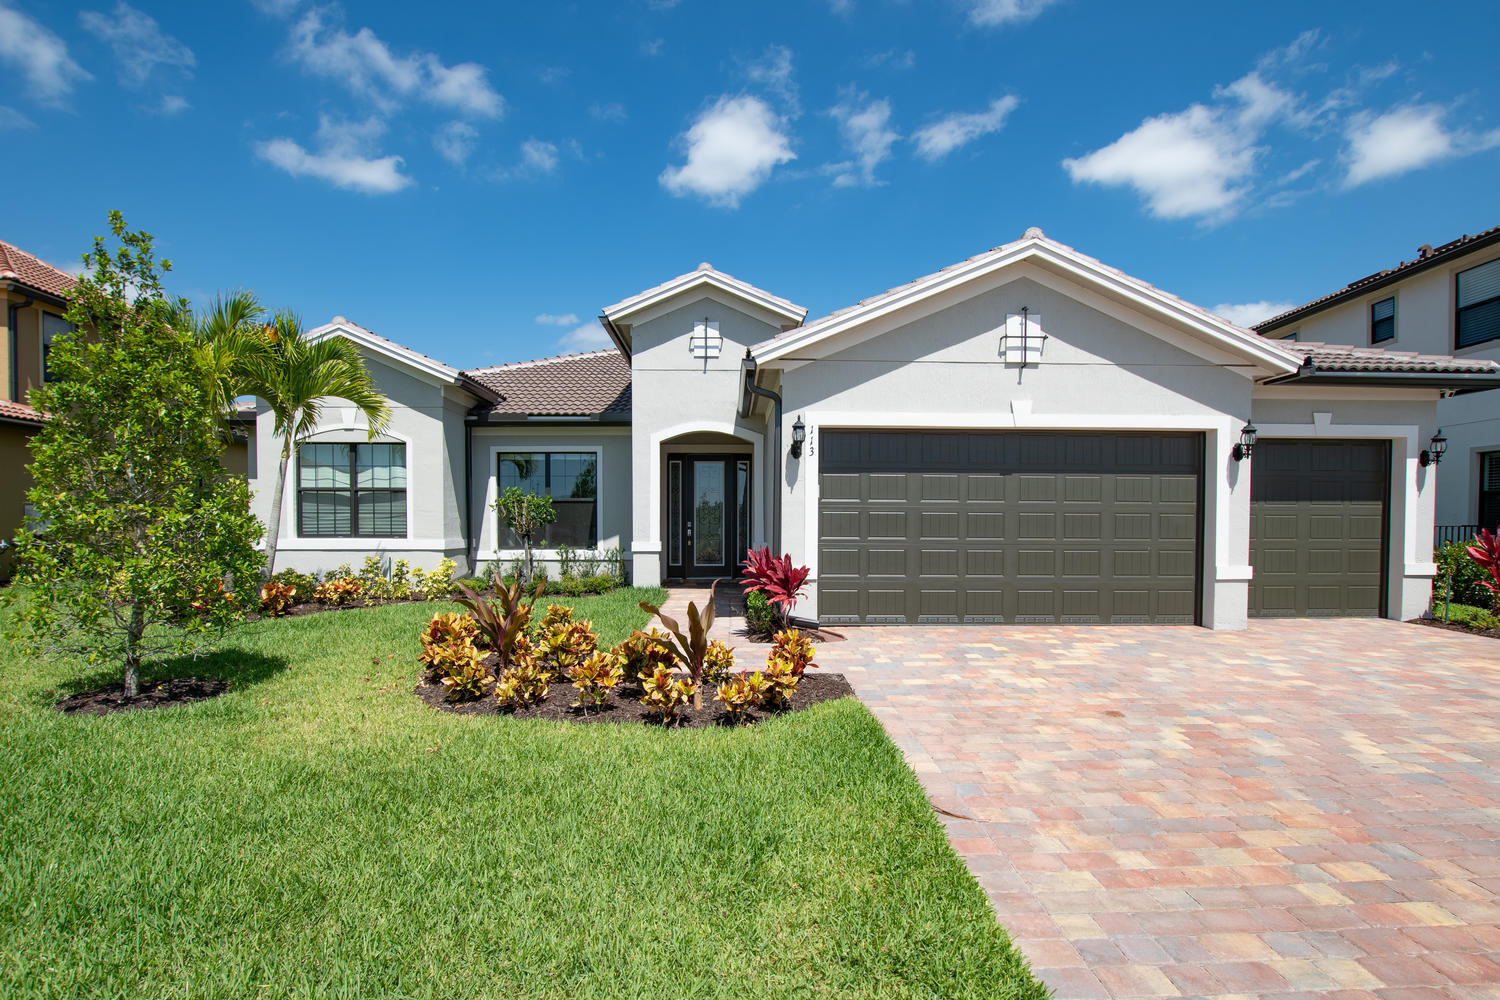 New Home for sale at 113 Blanca Isles Lane in Jupiter